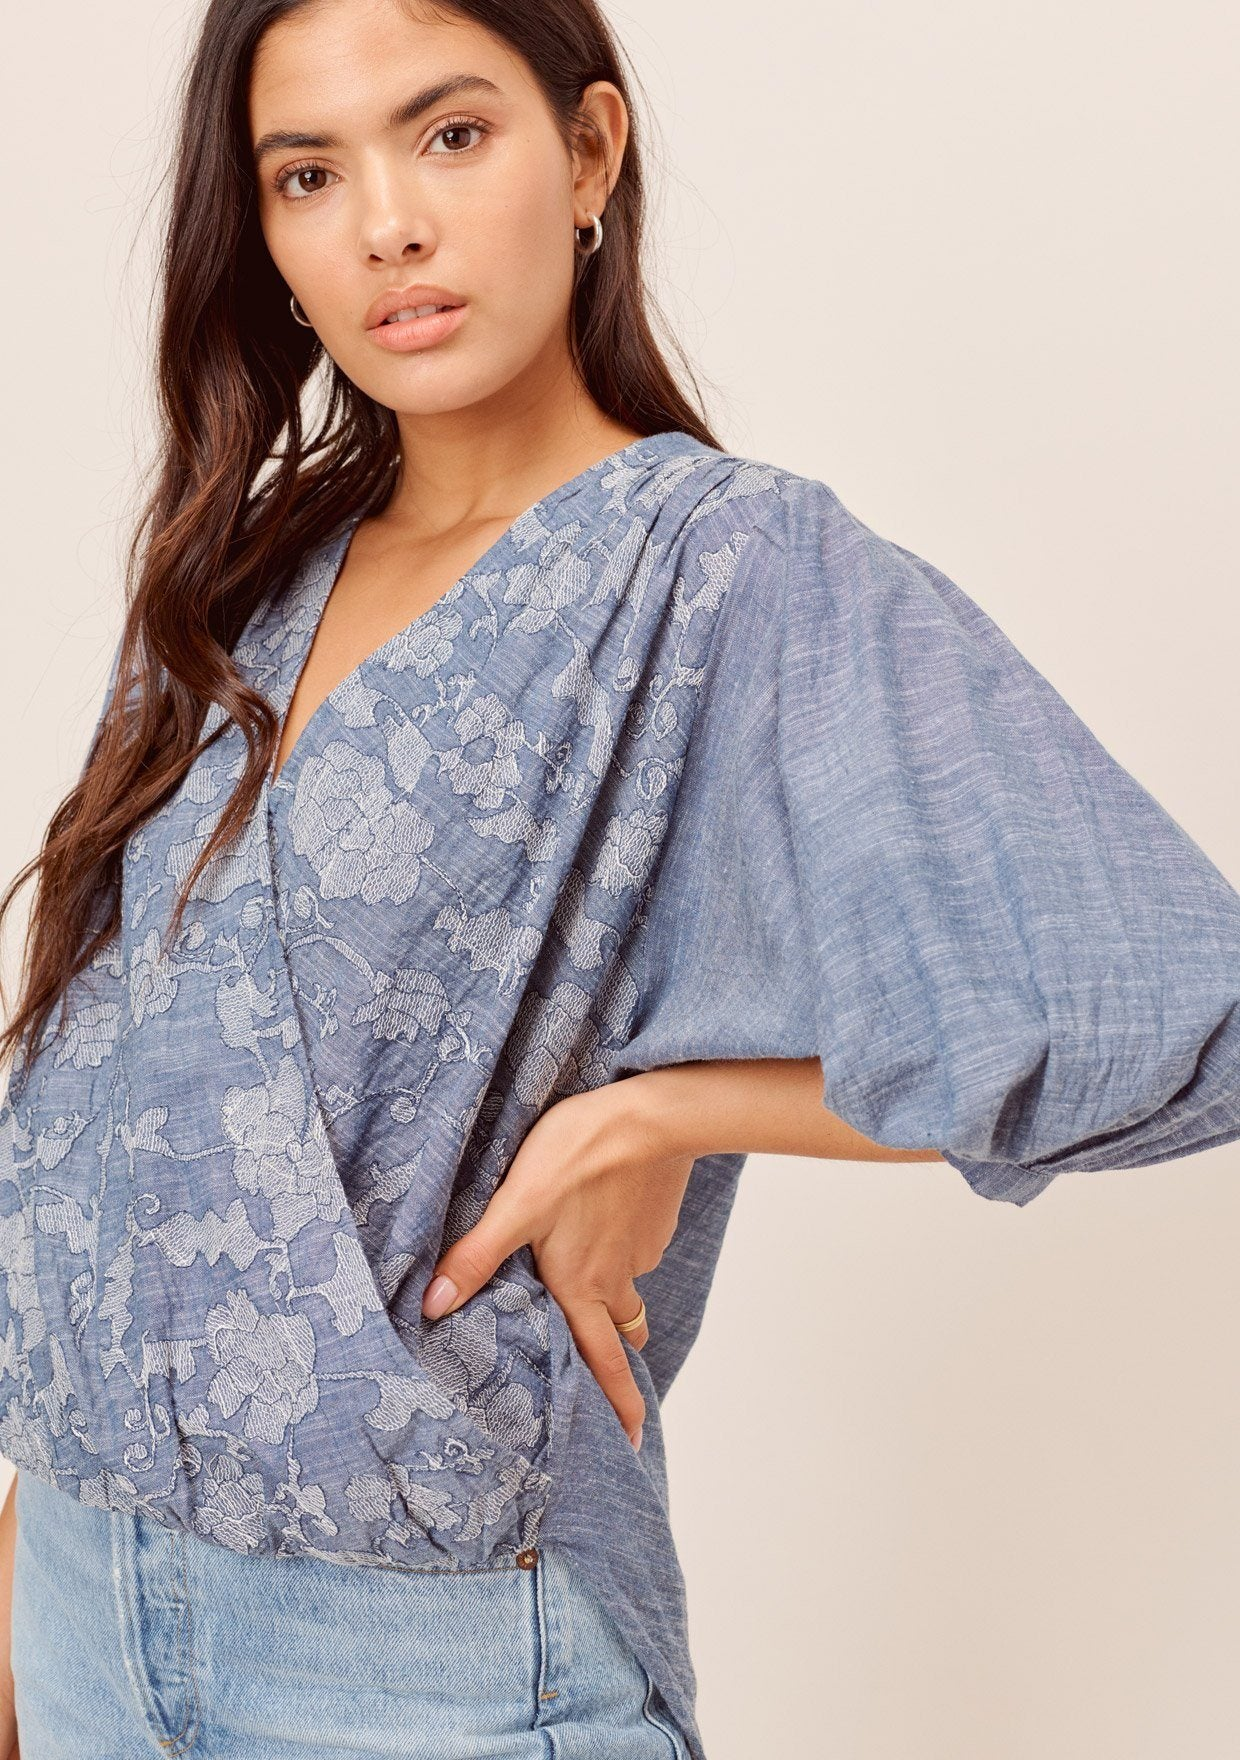 [Color: Indigo] Lovestitch indigo embroidered cotton, dolman sleeve surplice top with high-low hem.